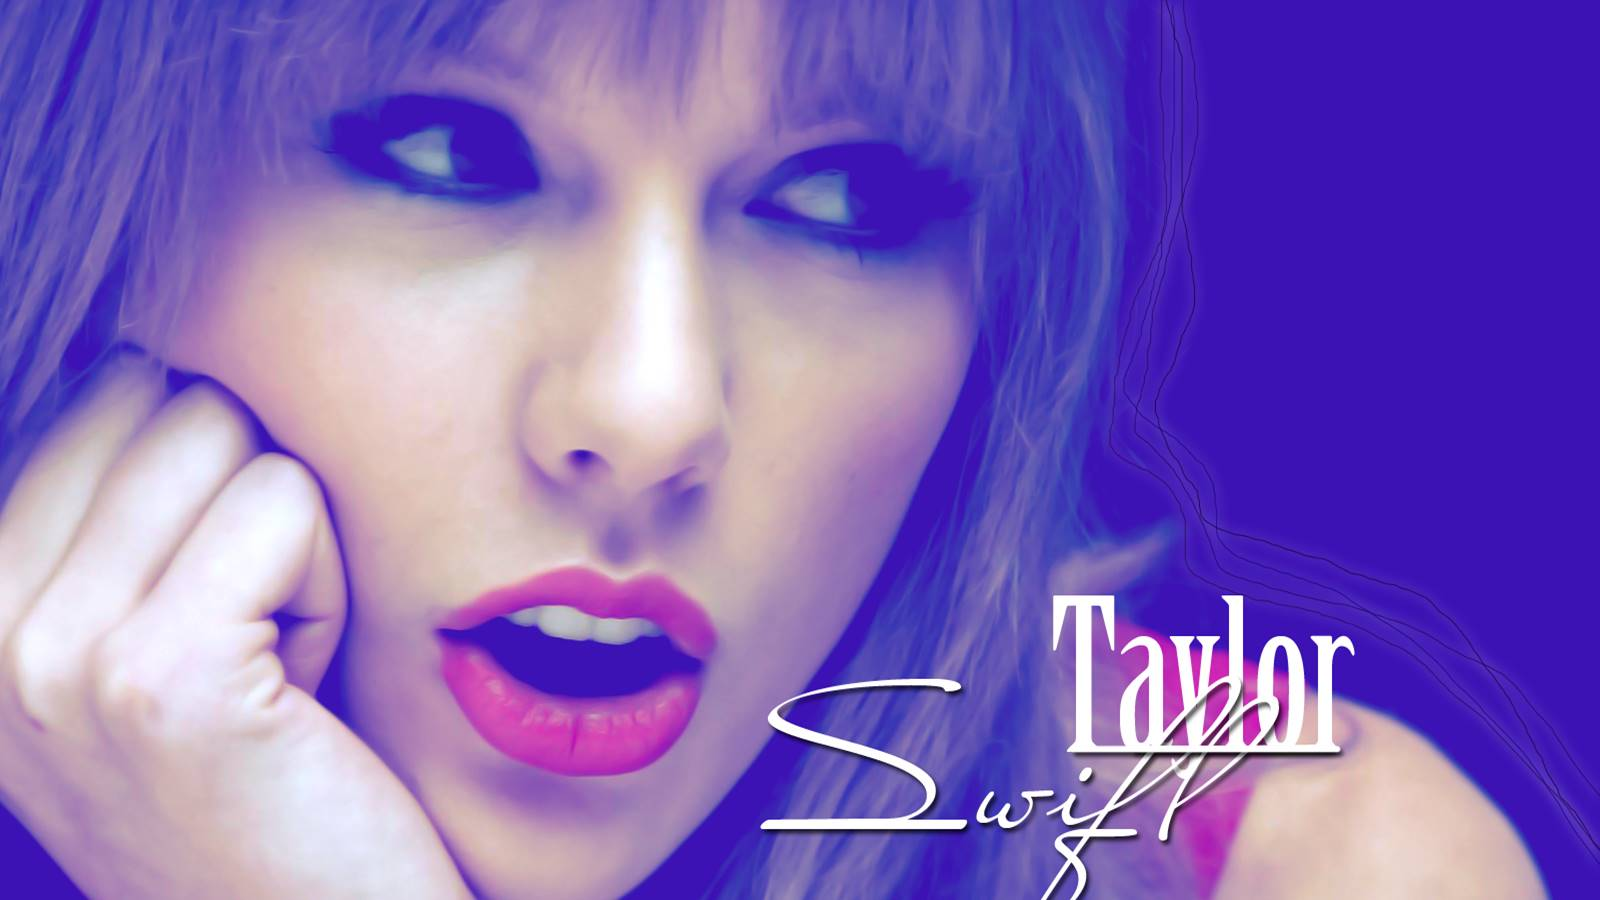 Taylor Swift 2017 Wallpapers